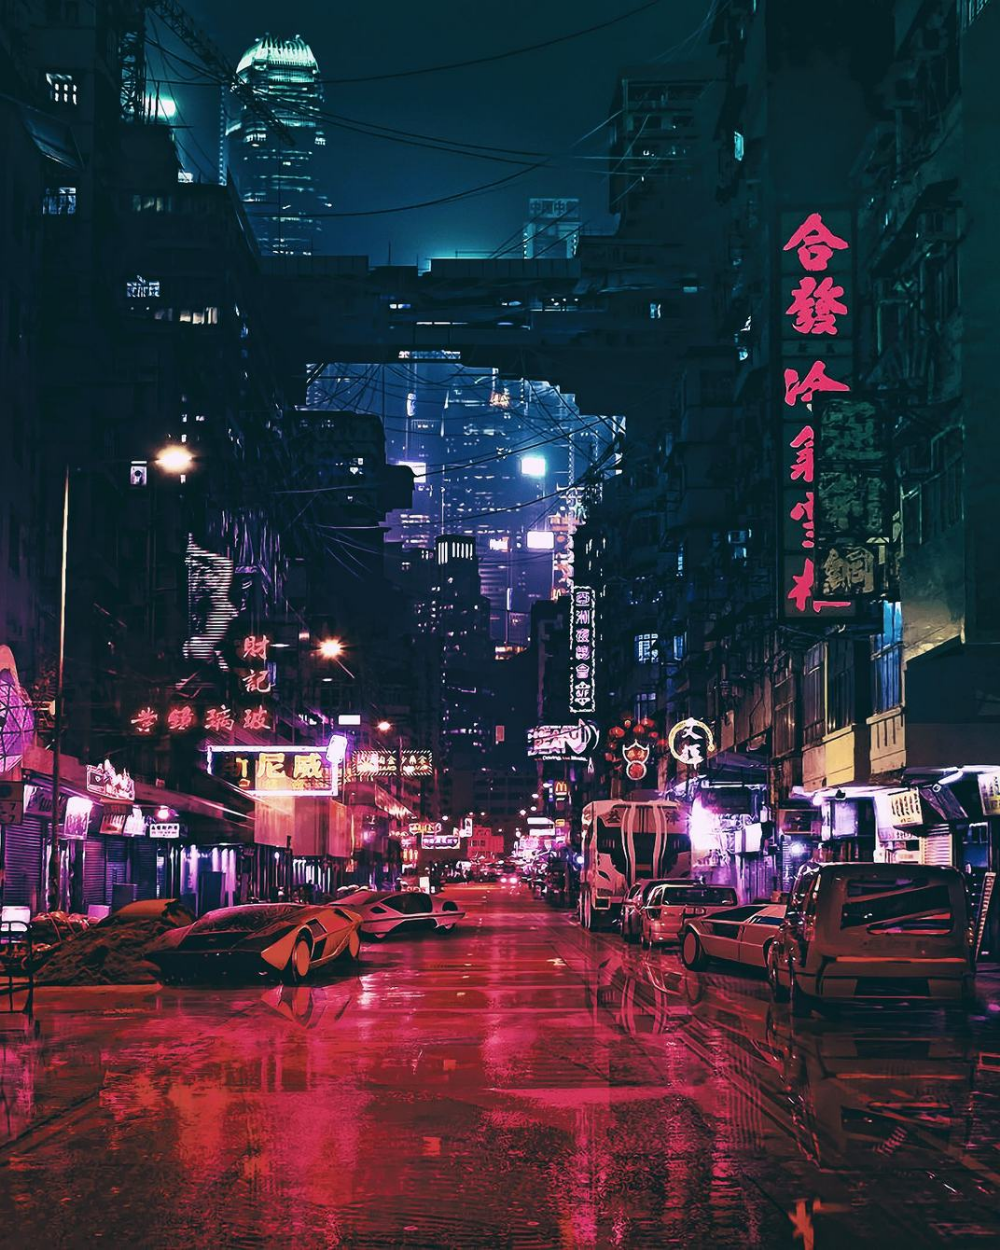 Cyberpunk Futuristic City Wallpaper Futuristic City City Wallpaper Pop Art Wallpaper